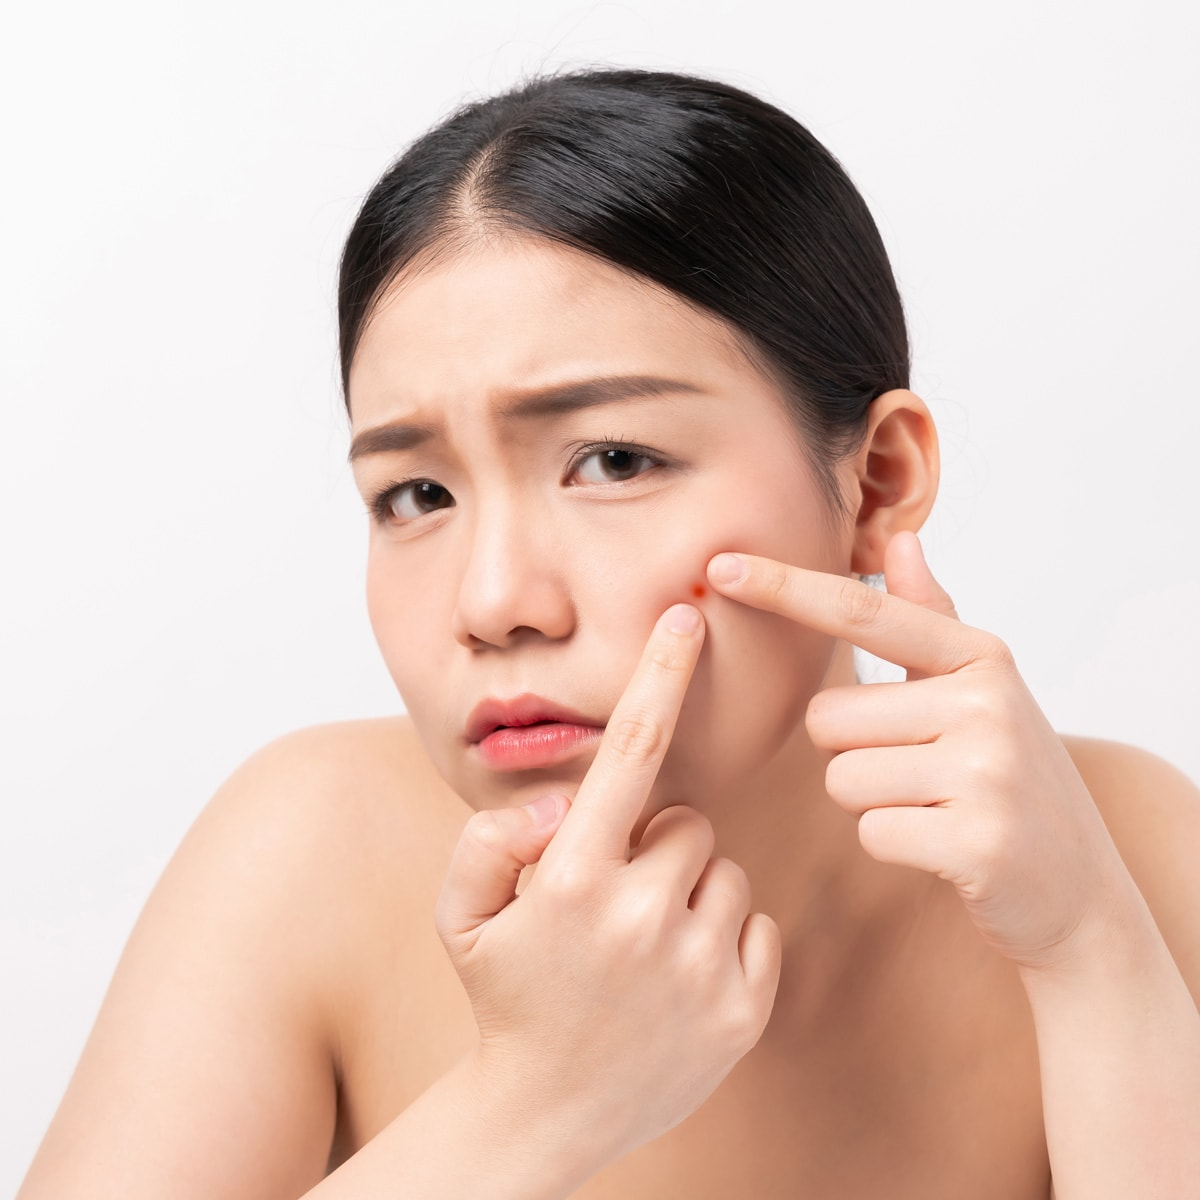 How To Treat Acne Prone Skin 7 Ways To Prevent Acne At Home